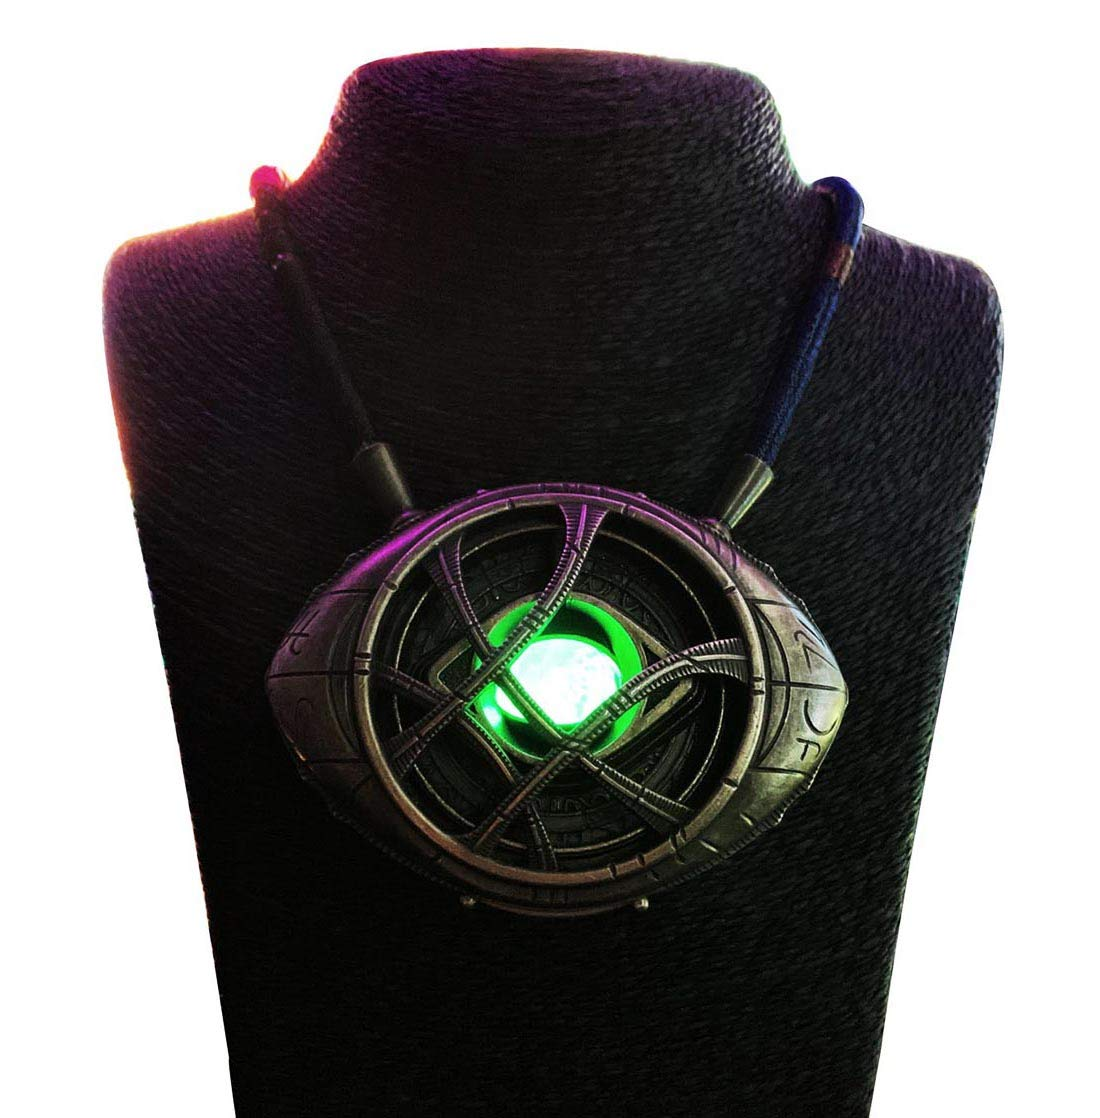 Gmasking 2019 Metal Necklace Eye of Agamotto Light-up Costume Pendant Exclusive 1:1 Replica Props